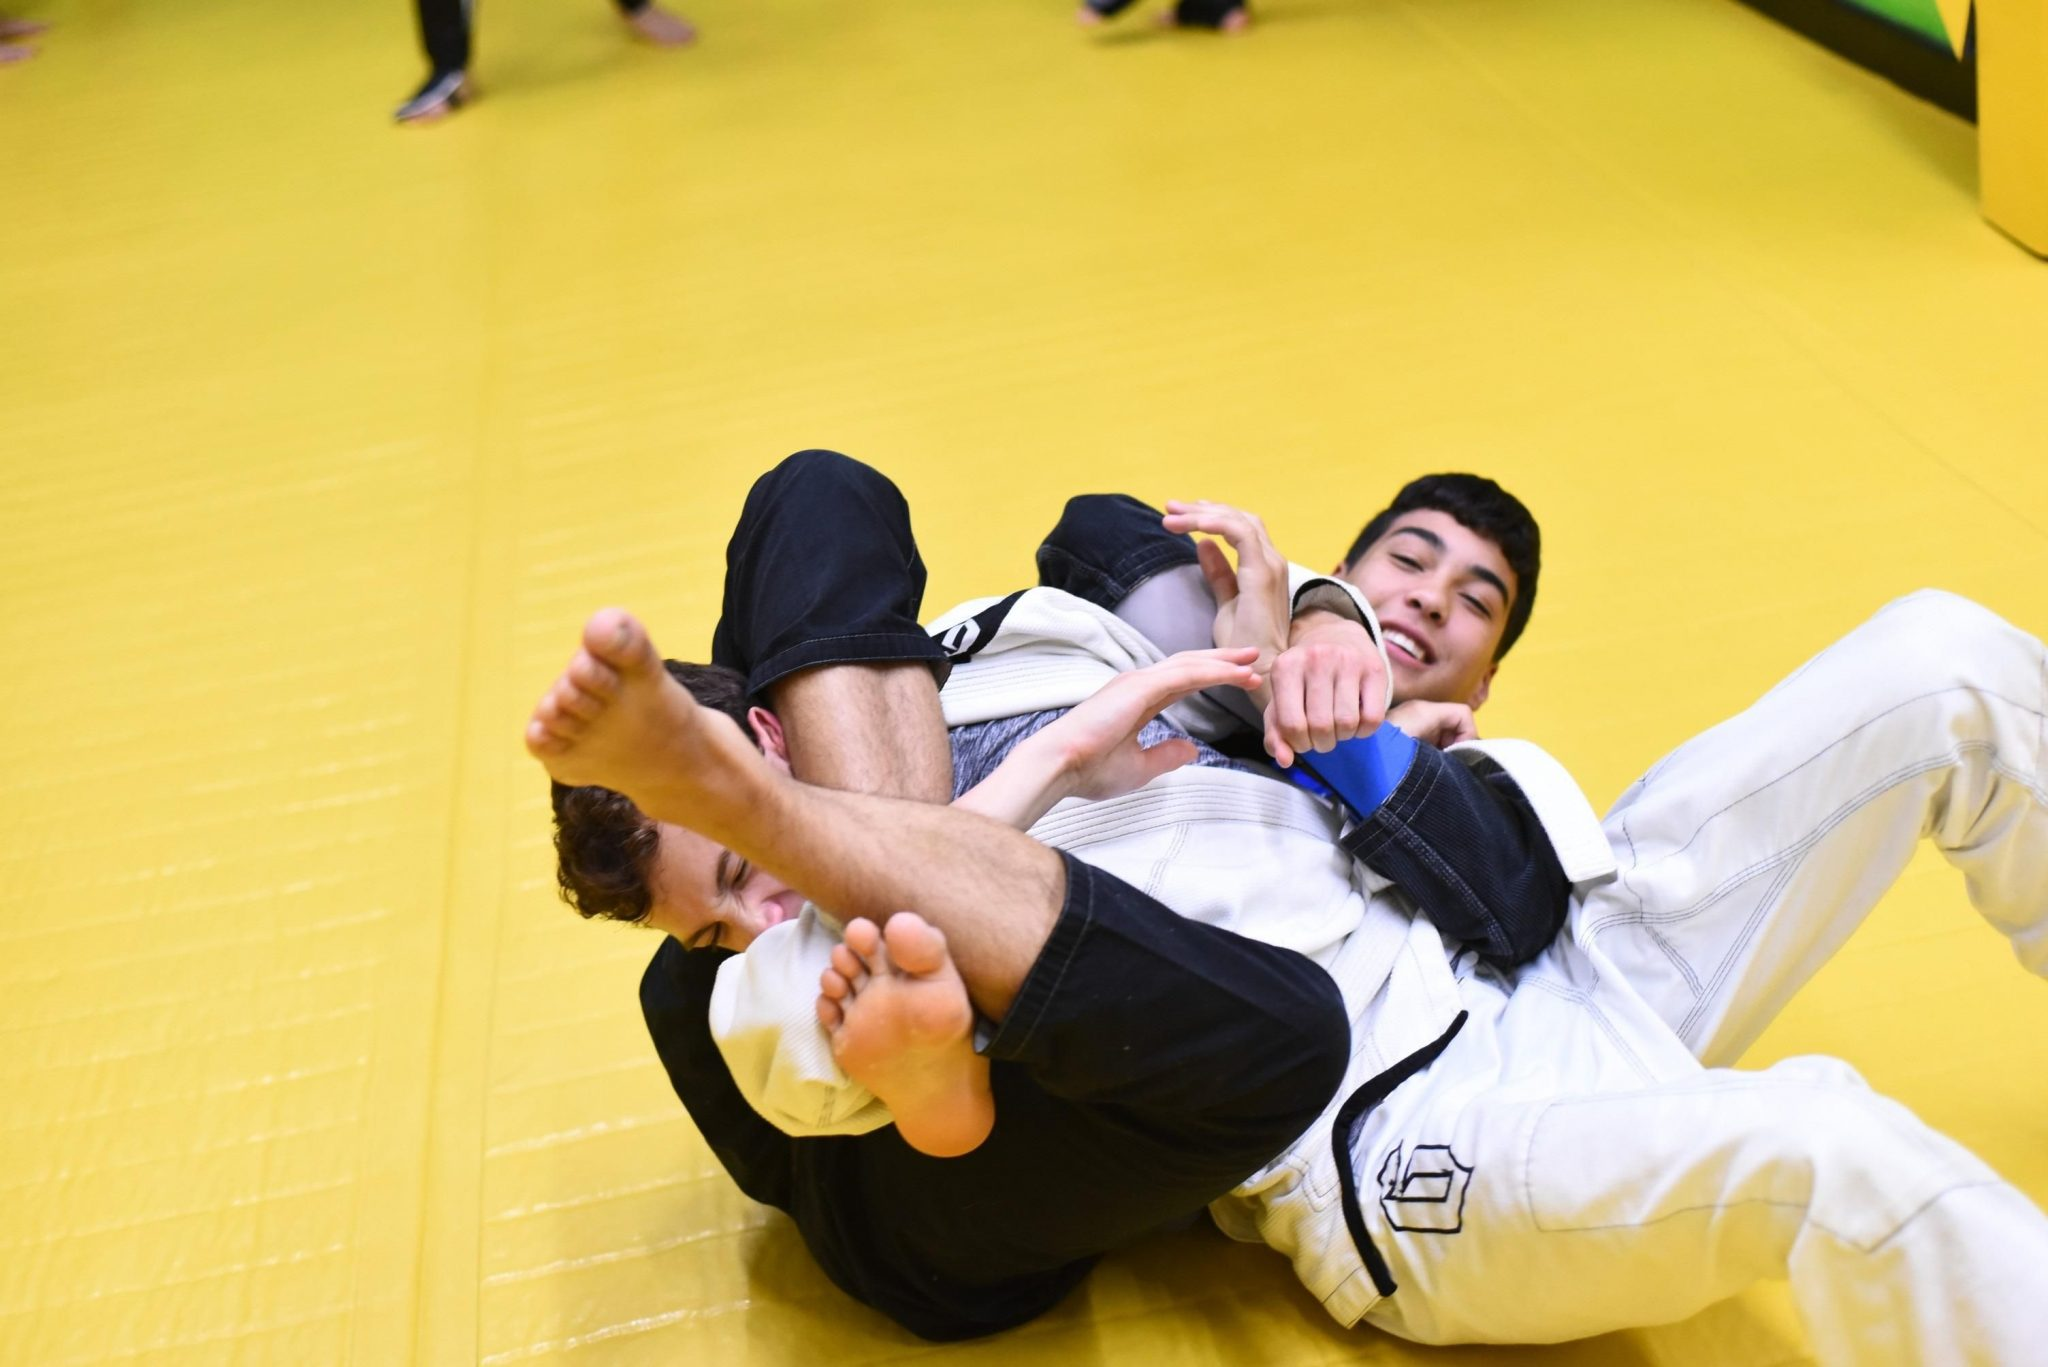 Intro: Teenagers BJJ